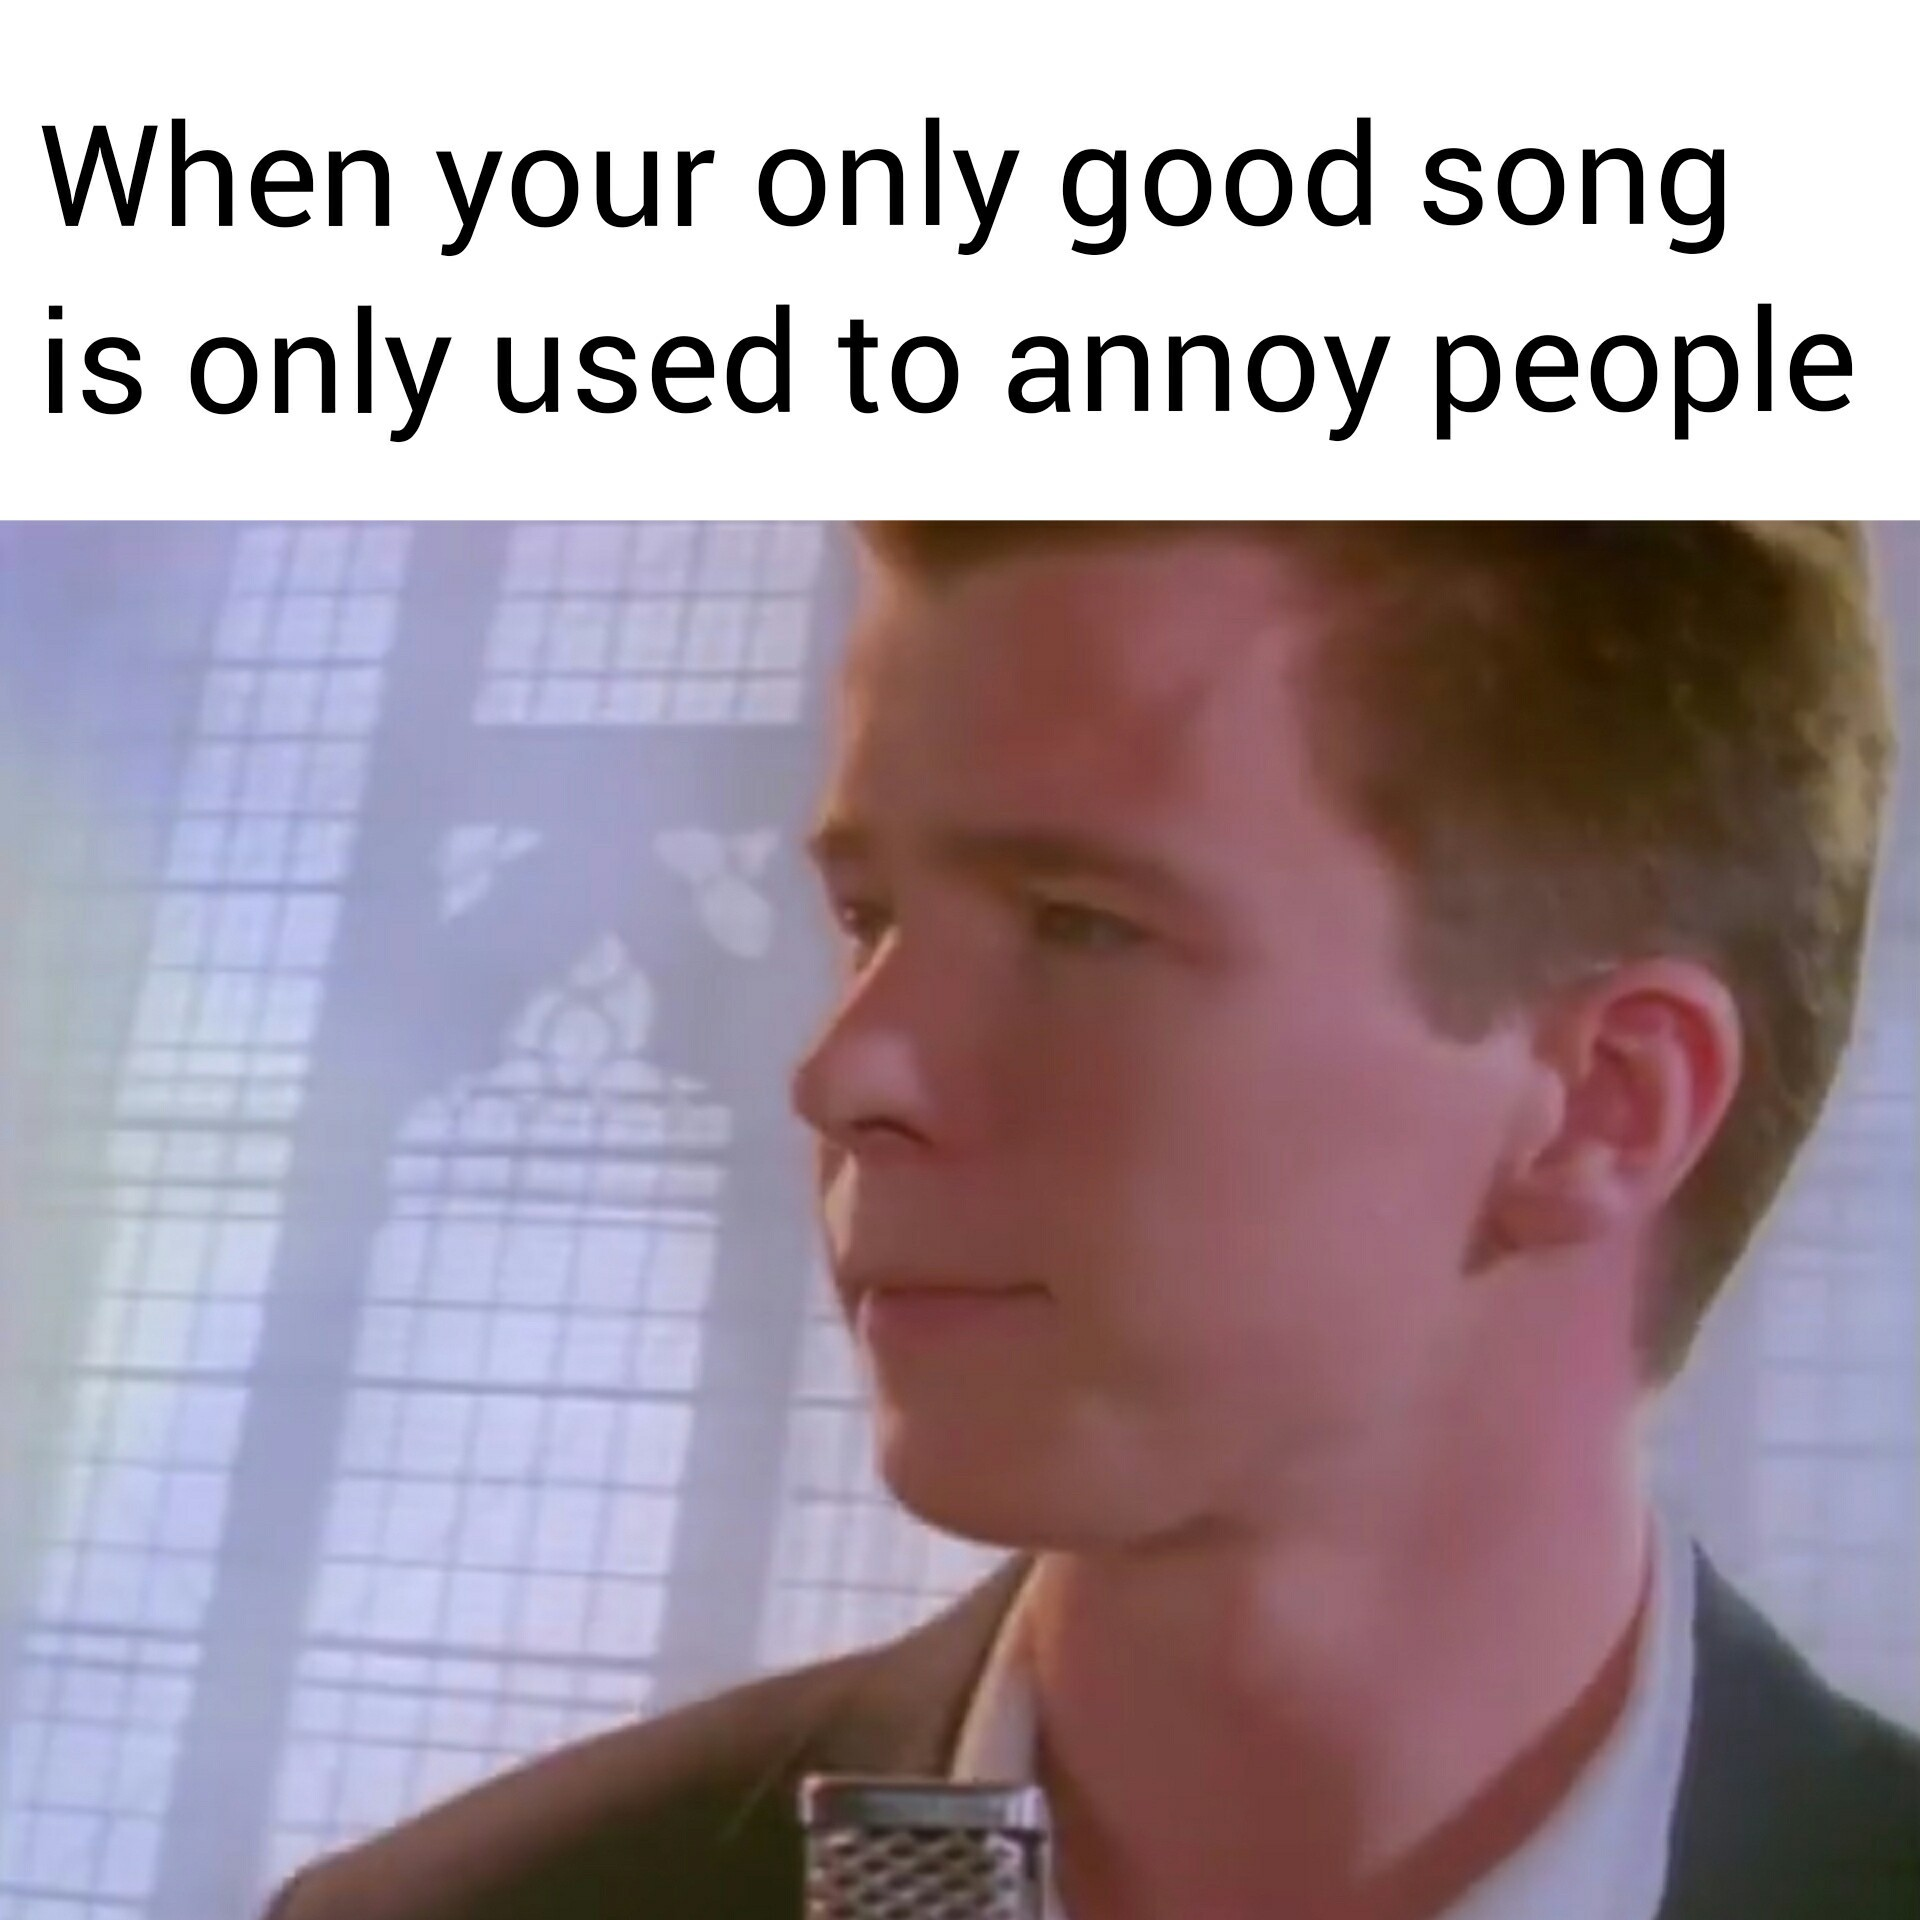 Rick Astley - Always Gonna Give You Up - meme